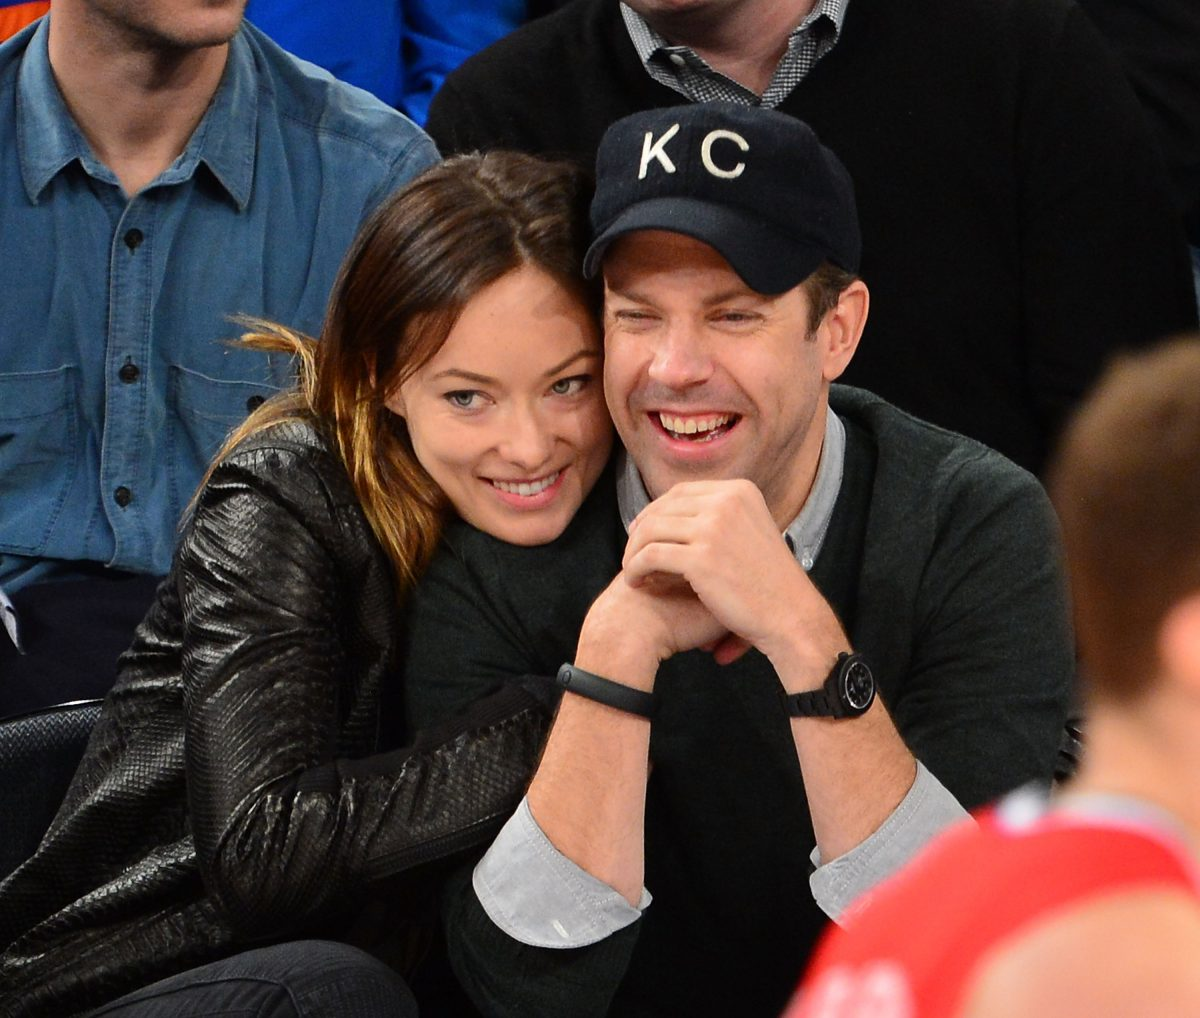 Olivia Wilde and Jason Sudeikis Split: Which Actor Has a Higher Net Worth?